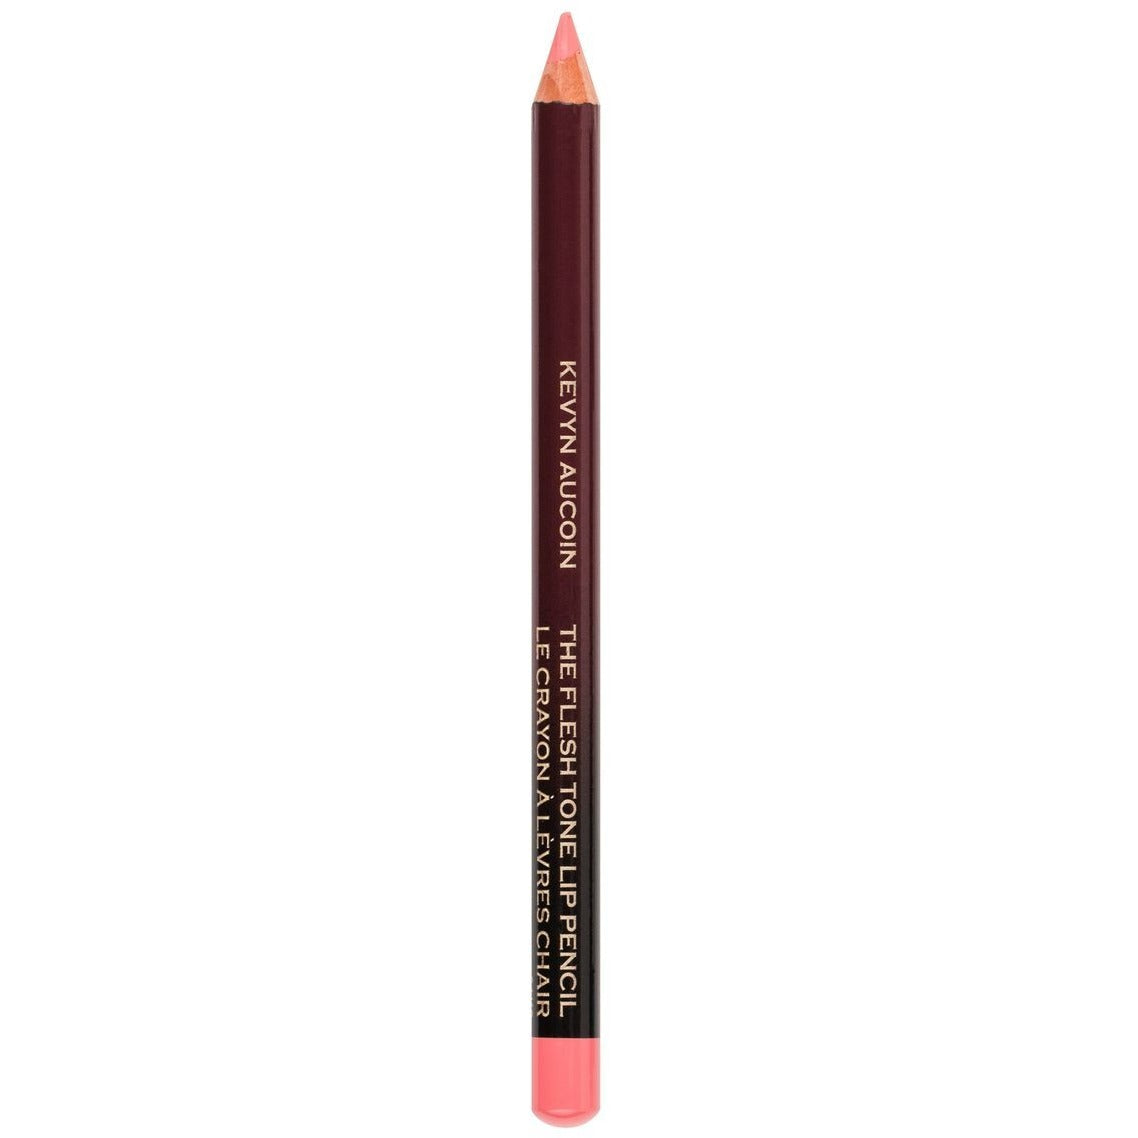 The Flesh Tone Lip Pencil - Peche